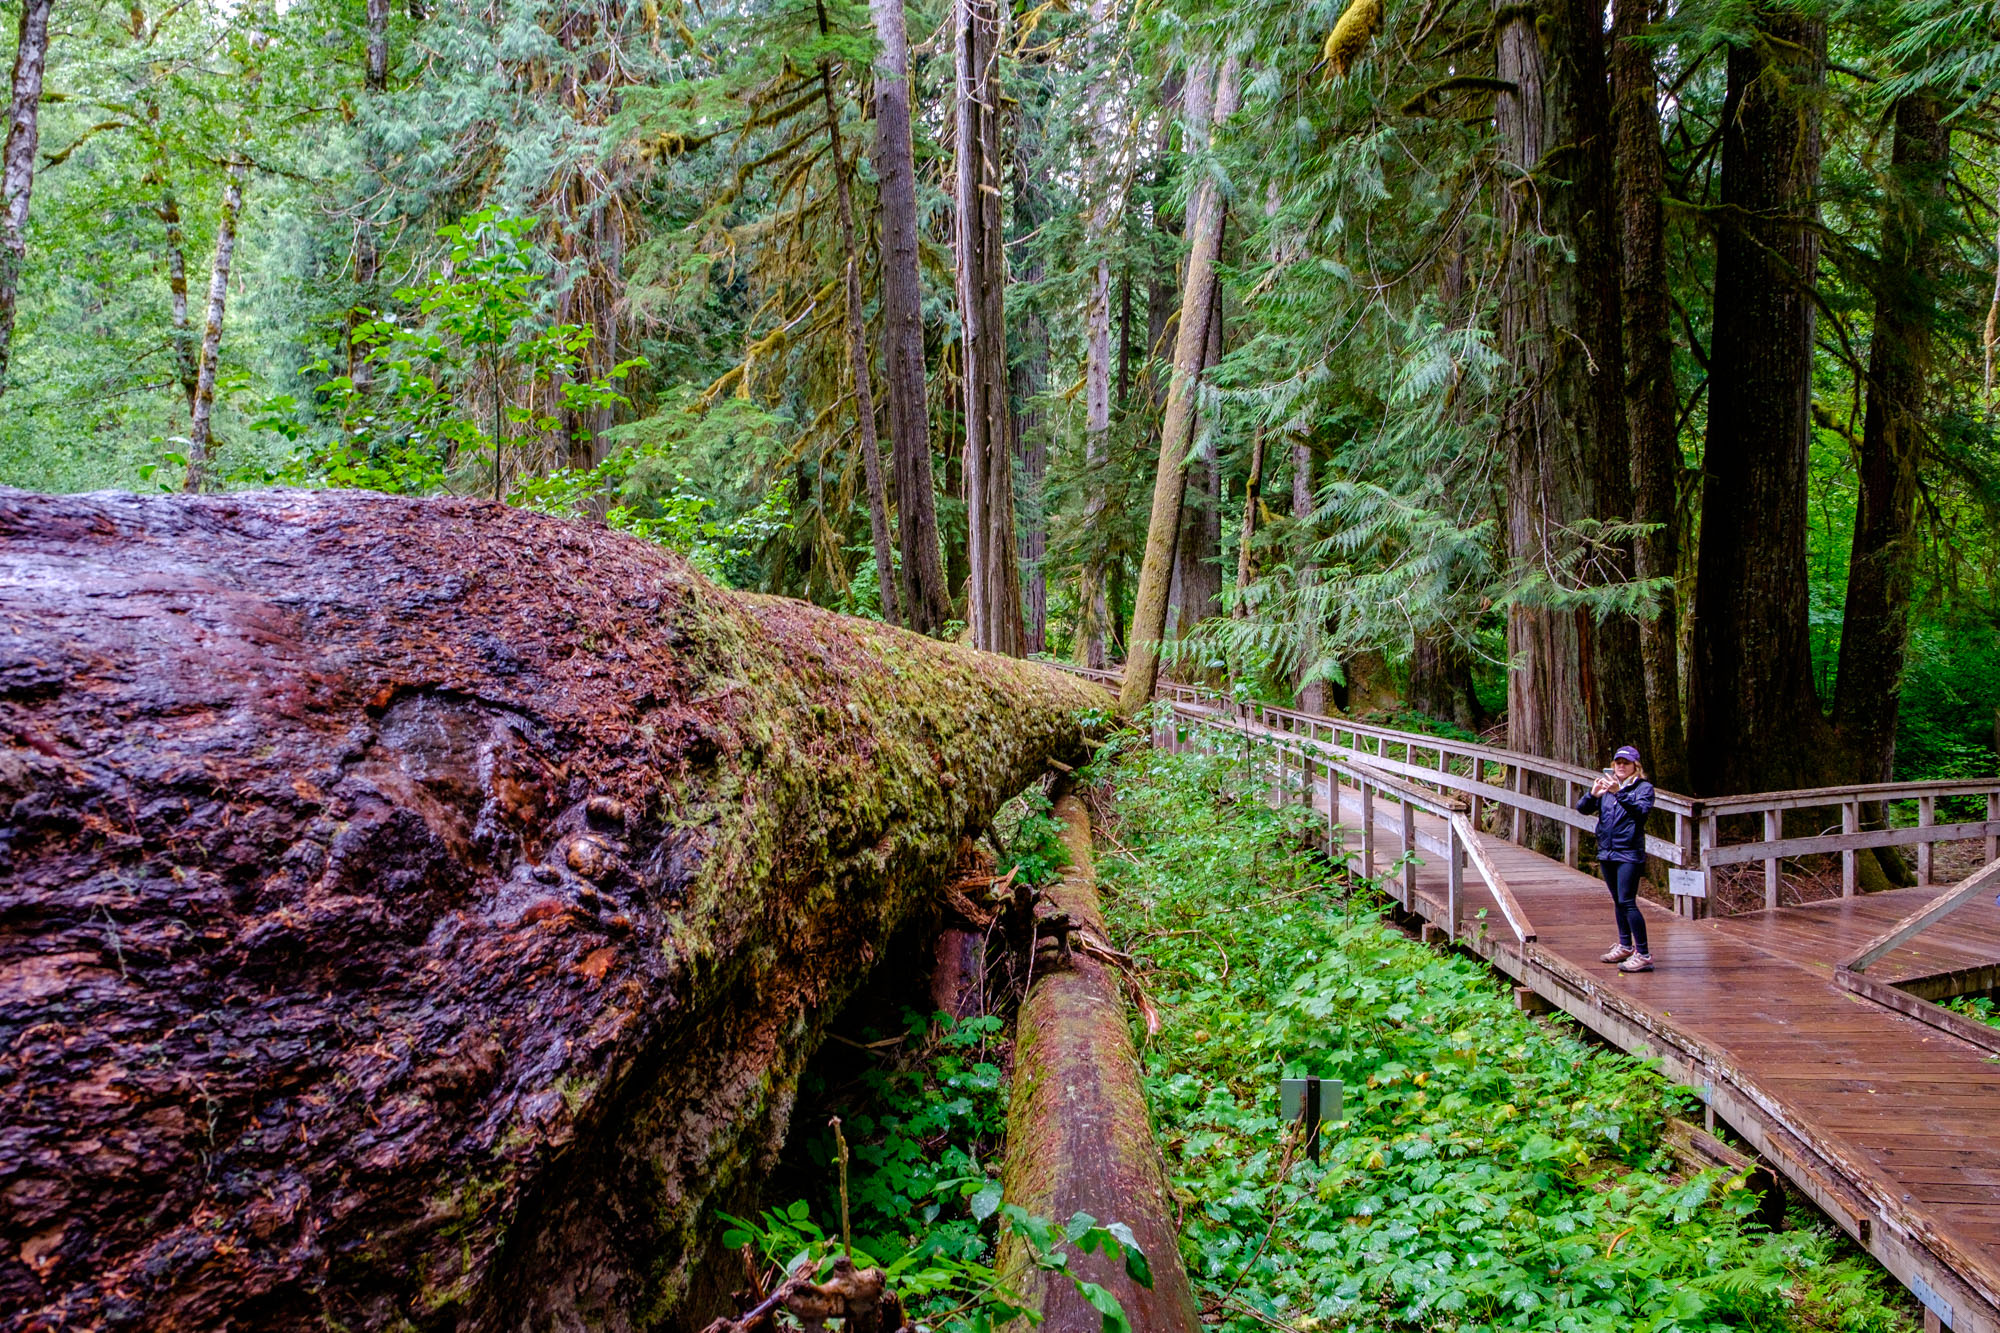 Pondering the height of this massive downed tree...it is huge!